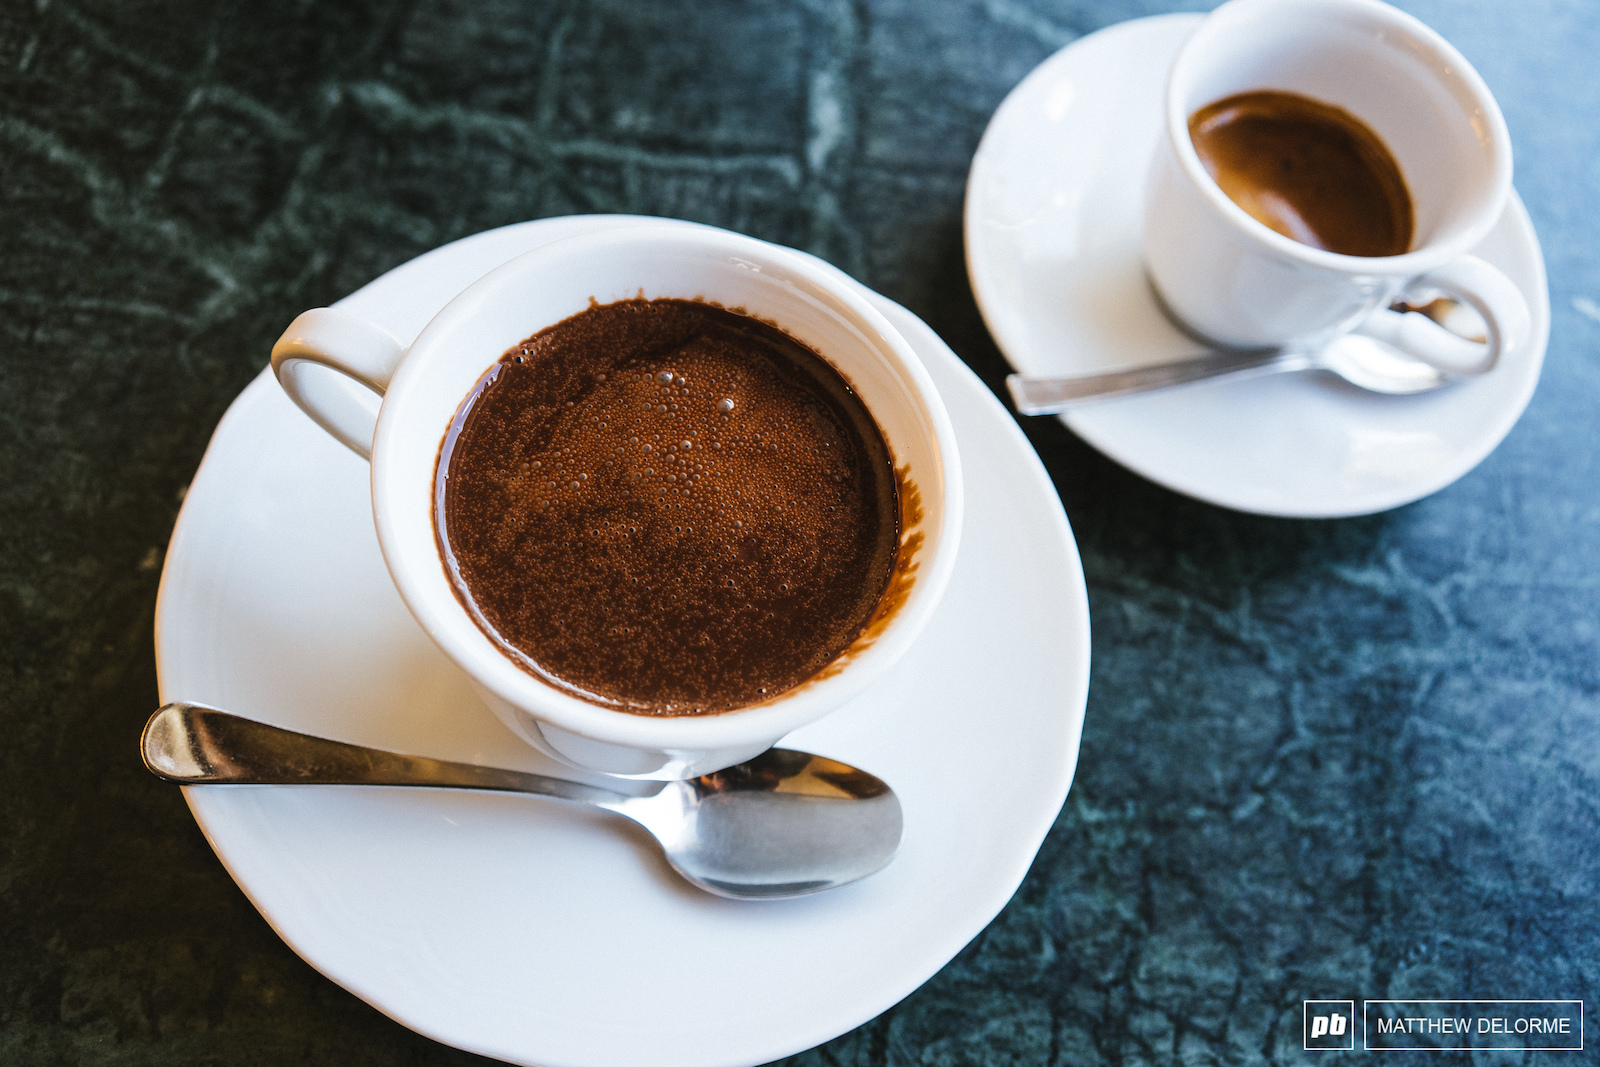 Lla Thuile also has an amazing hot chocolate at their local chocolate shop. It s won quite a few awards.